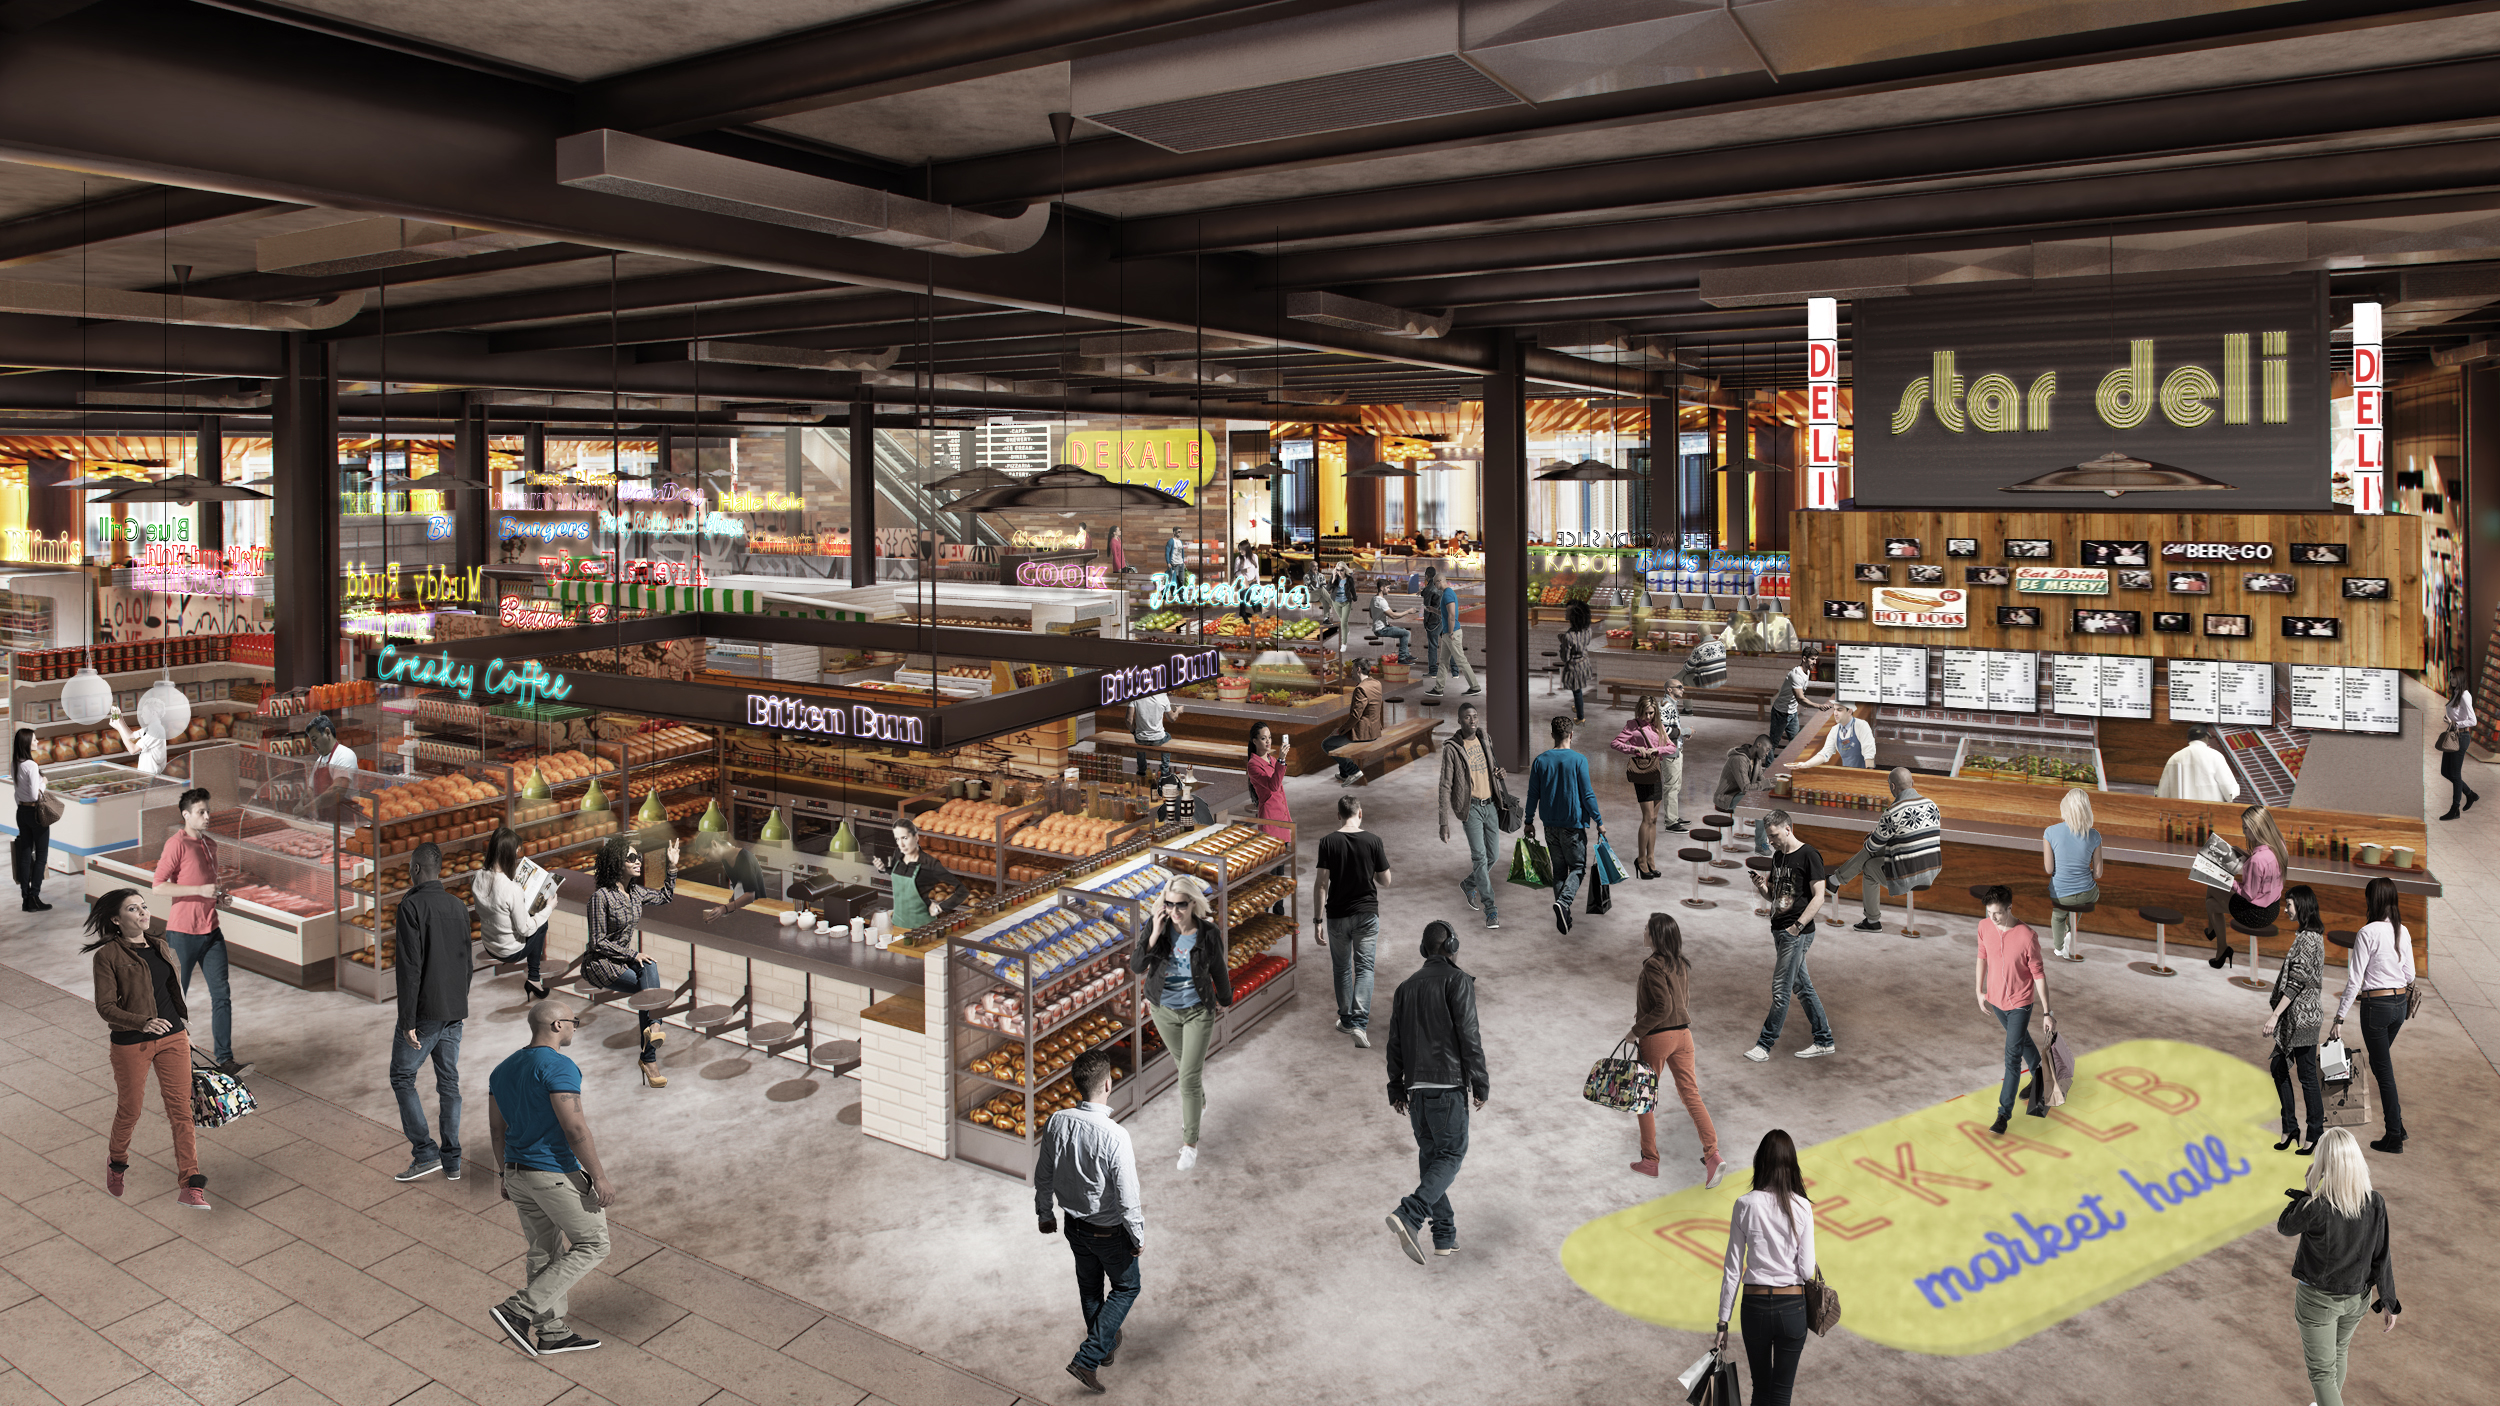 DeKalb Market Food Hall May Actually Open Next Month With an Even Hotter Line-Up